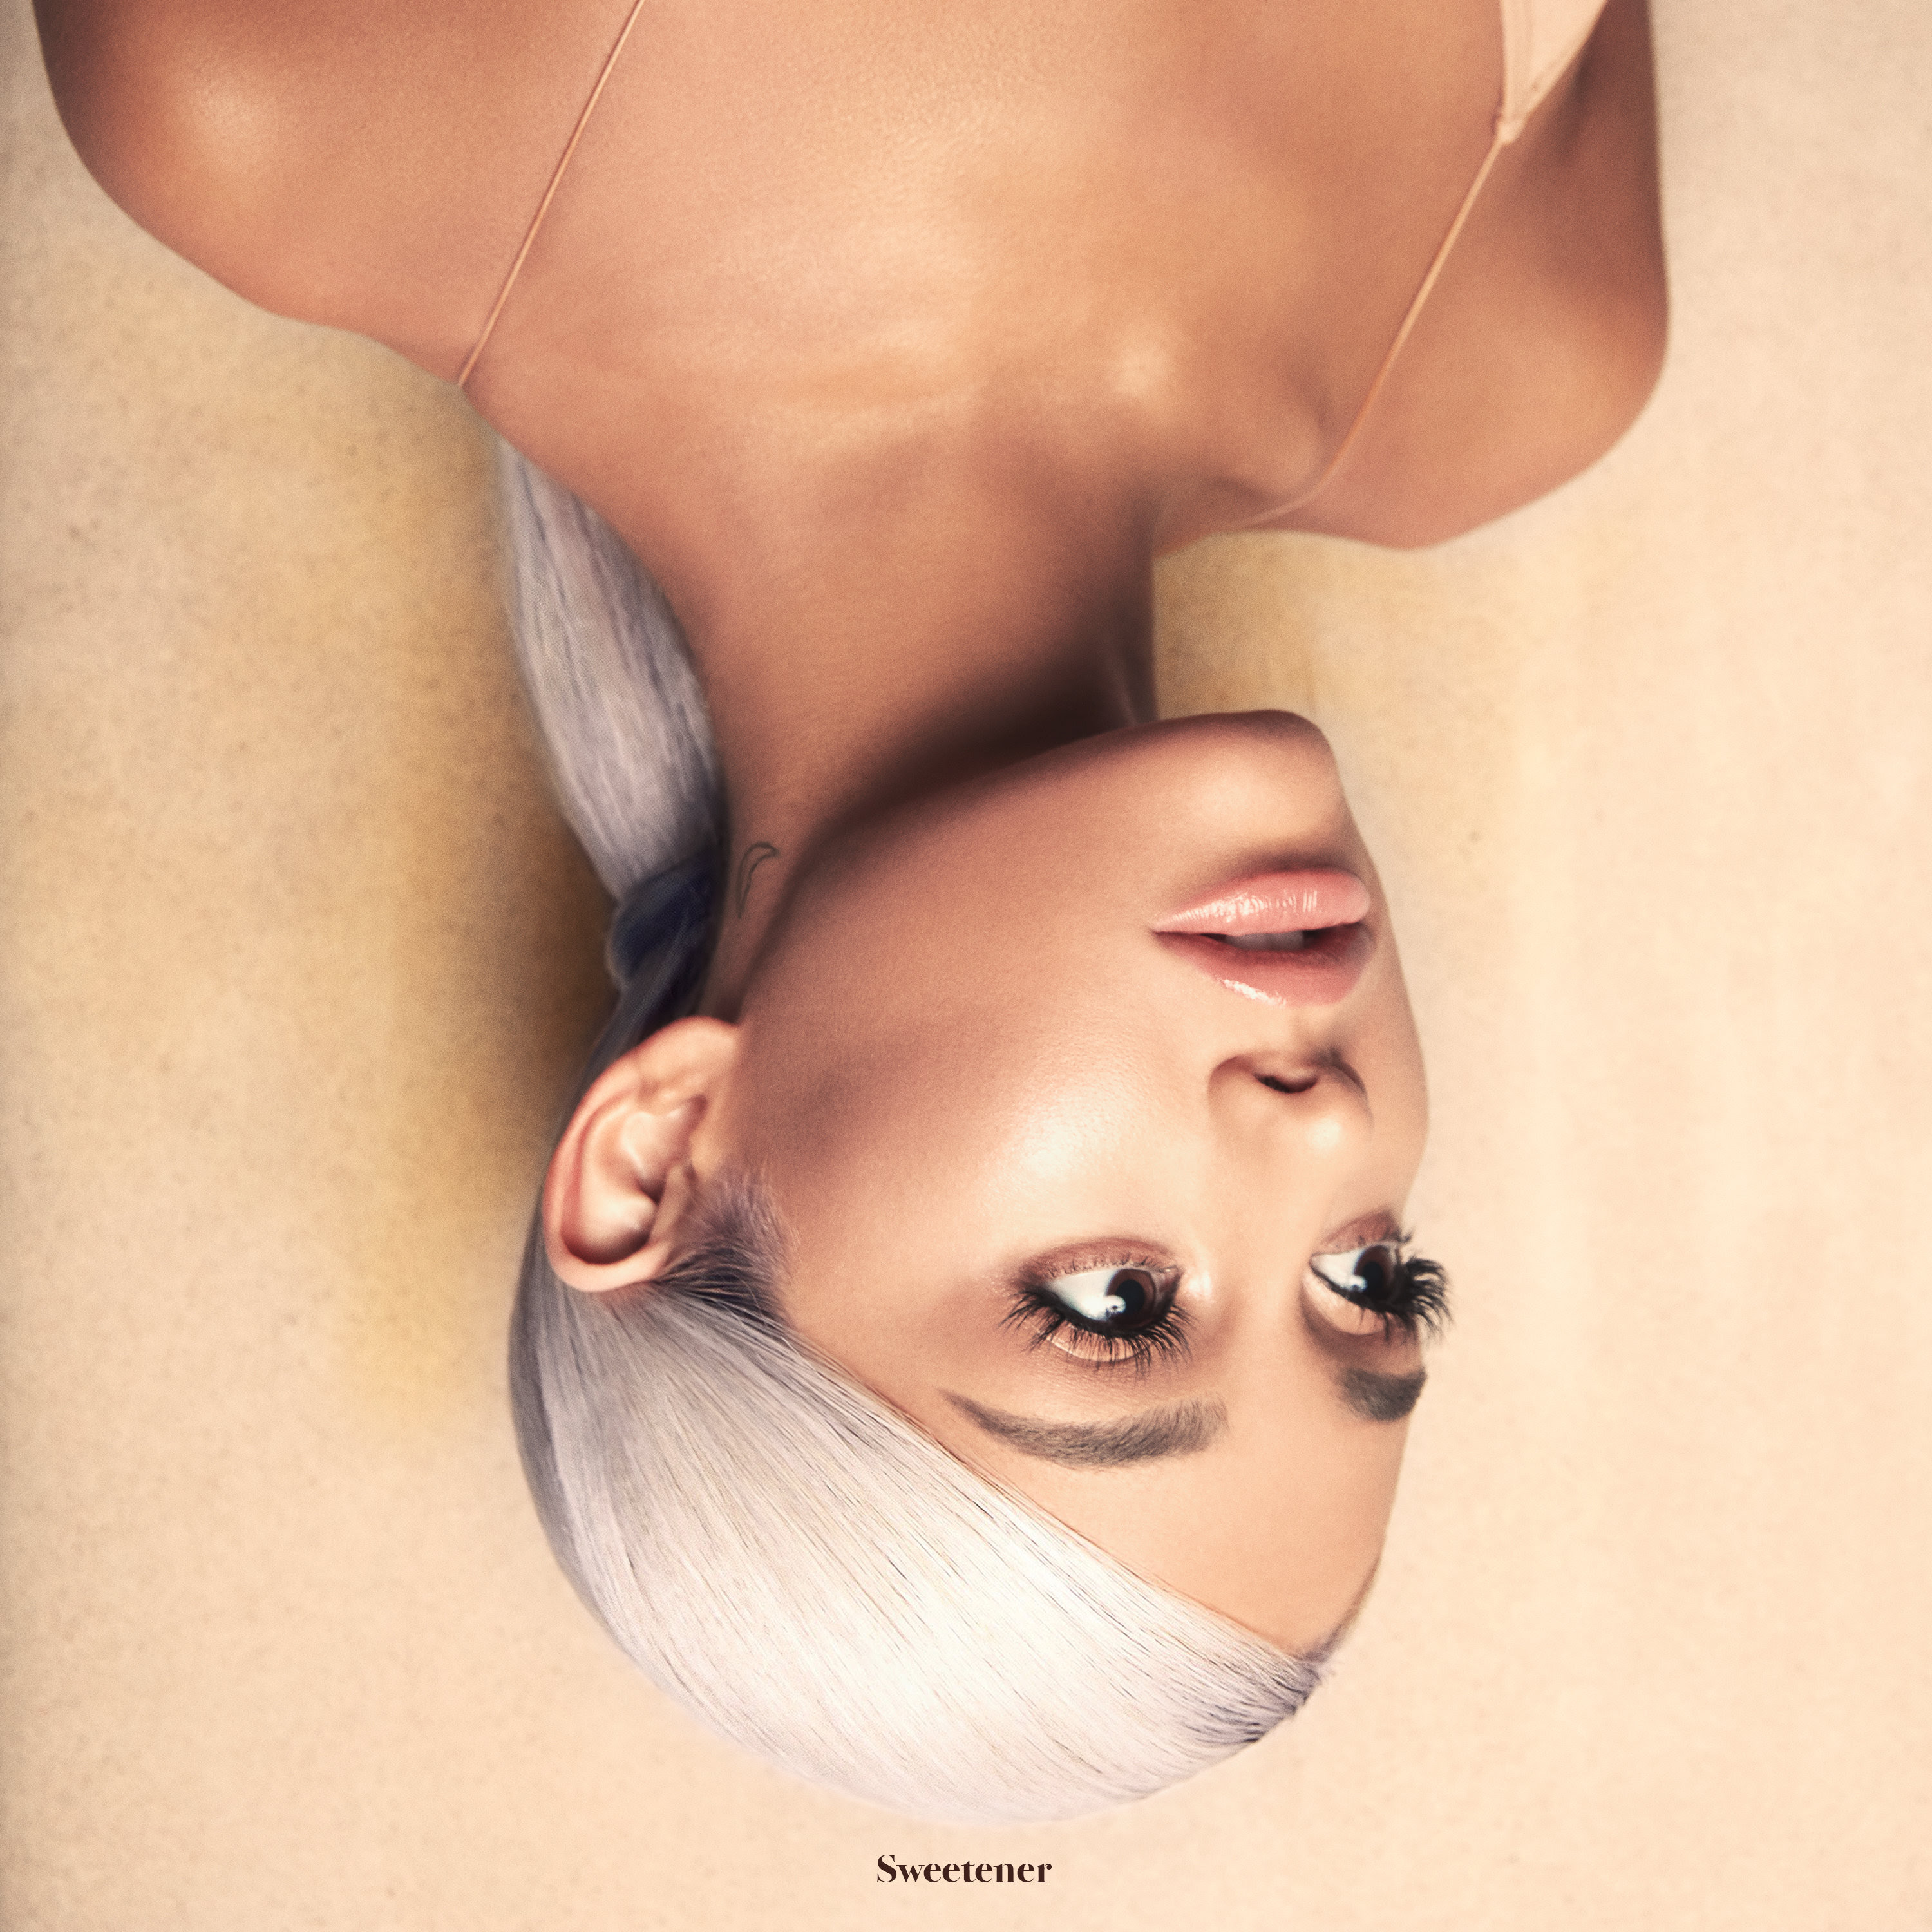 Ariana Grande Sweetener artwork